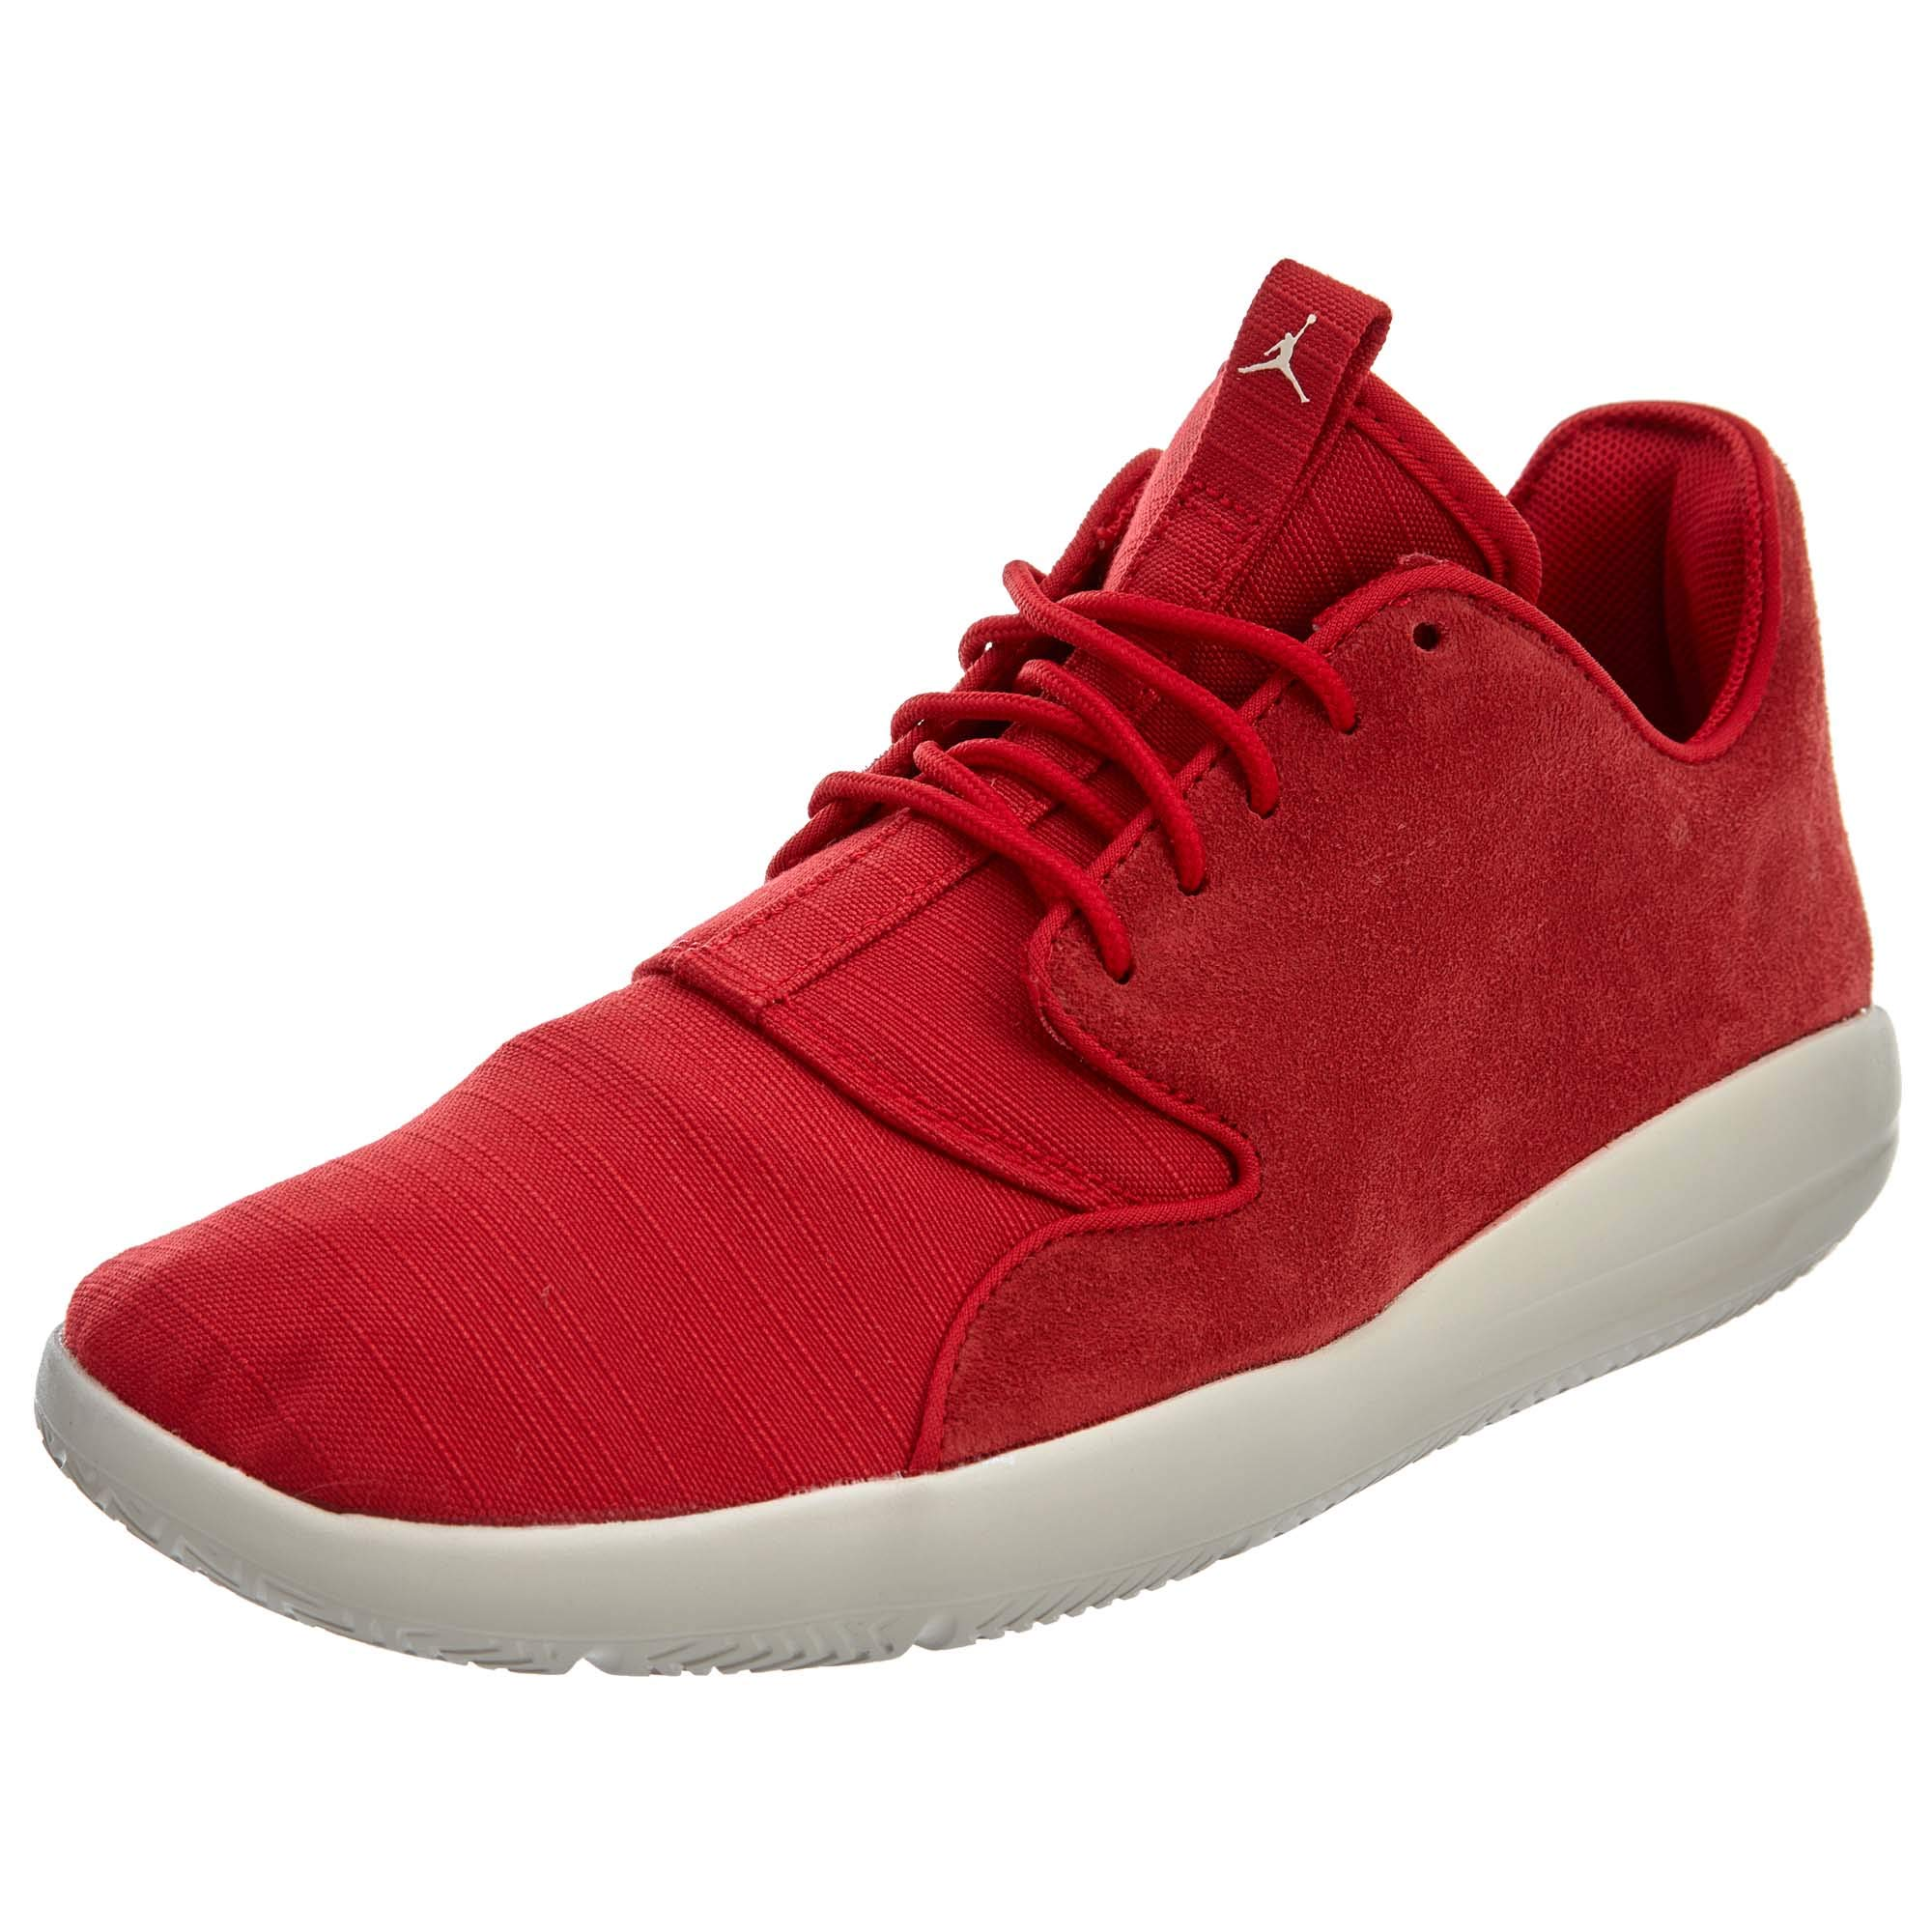 d48385cf7ec9a Jordan Mens Eclipse Leather Gym RED LT Orewood BRN Size 8